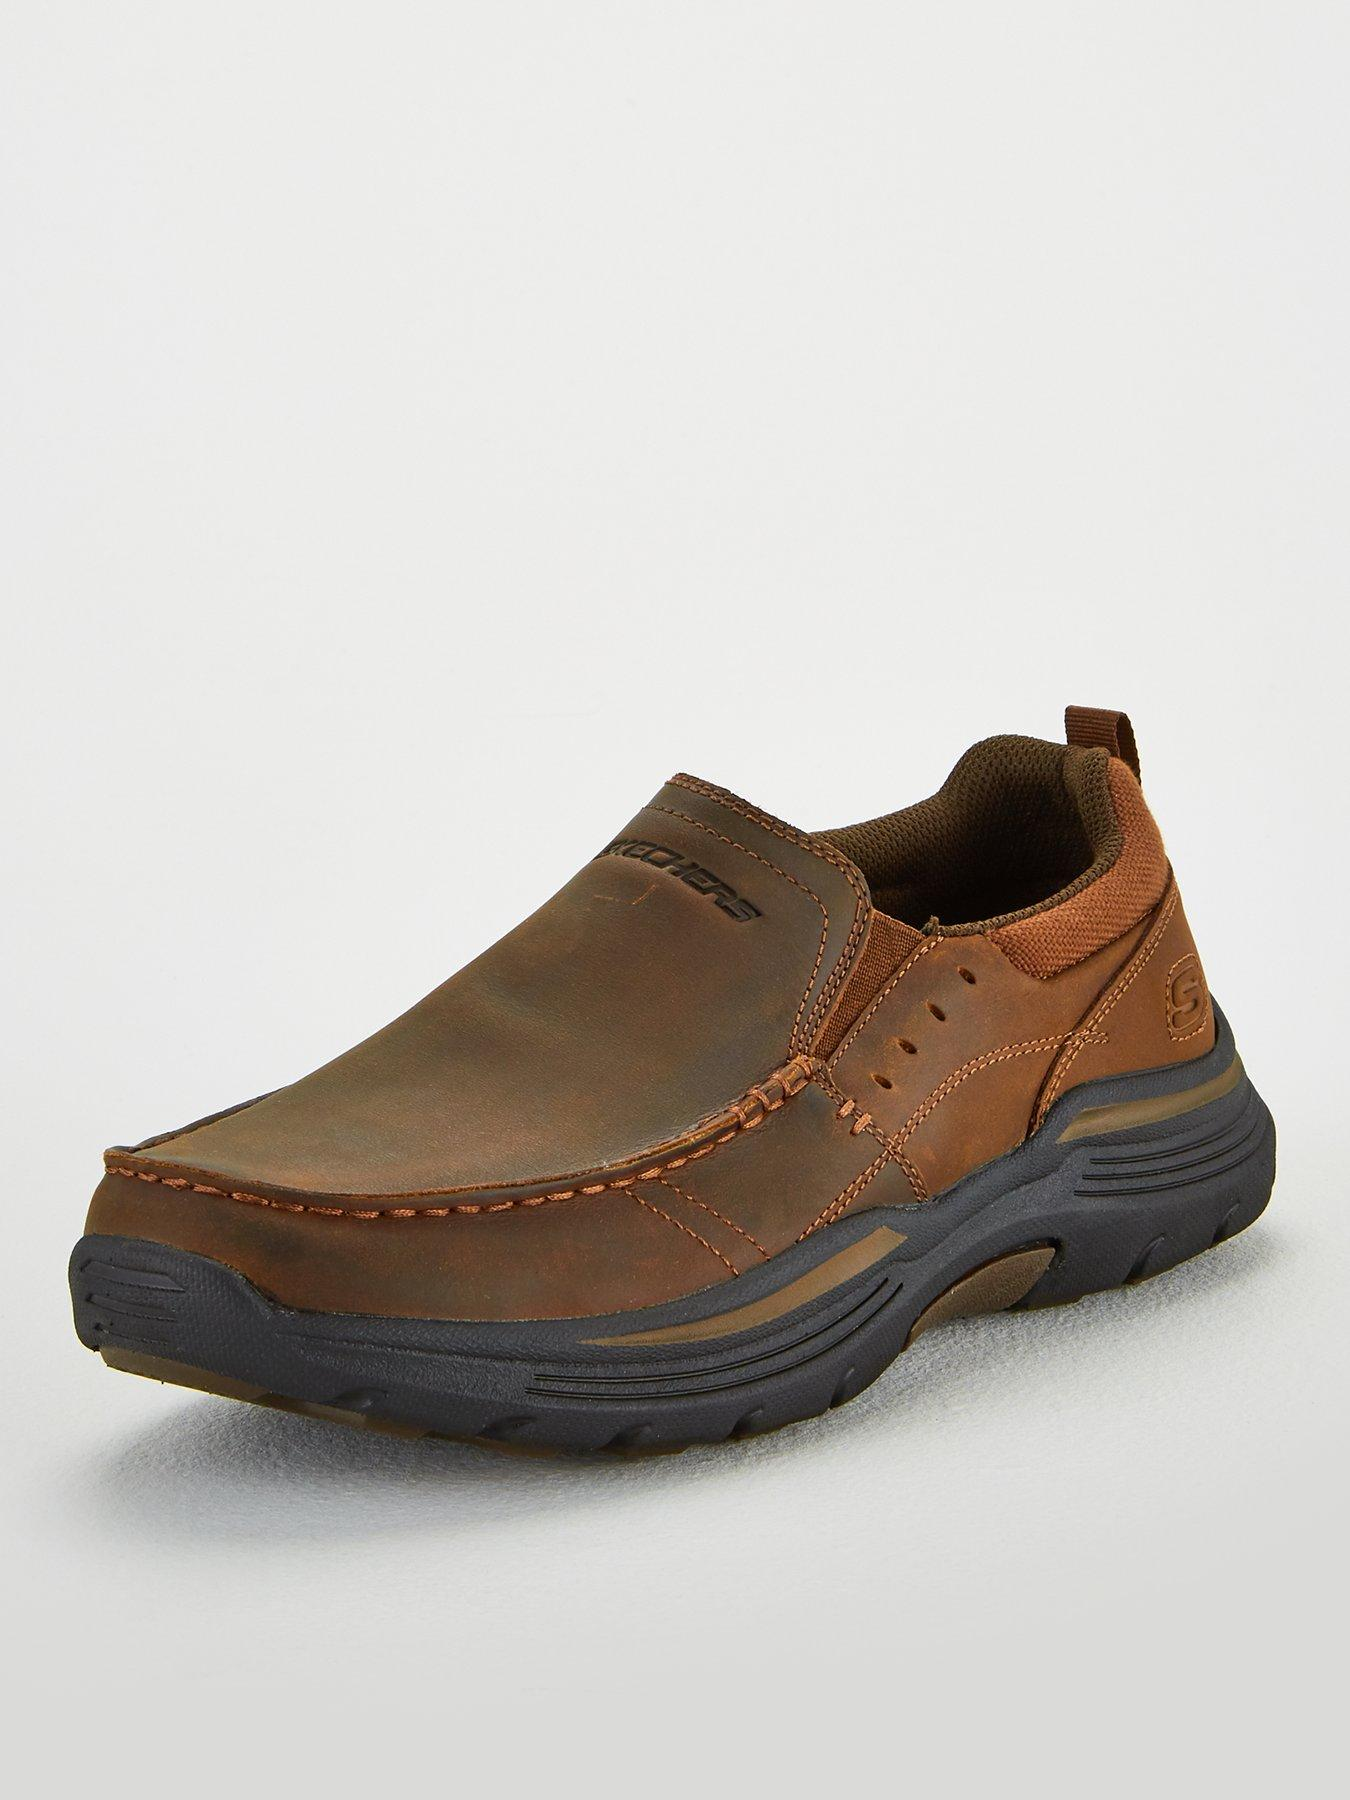 skechers stockists near me Sale,up to